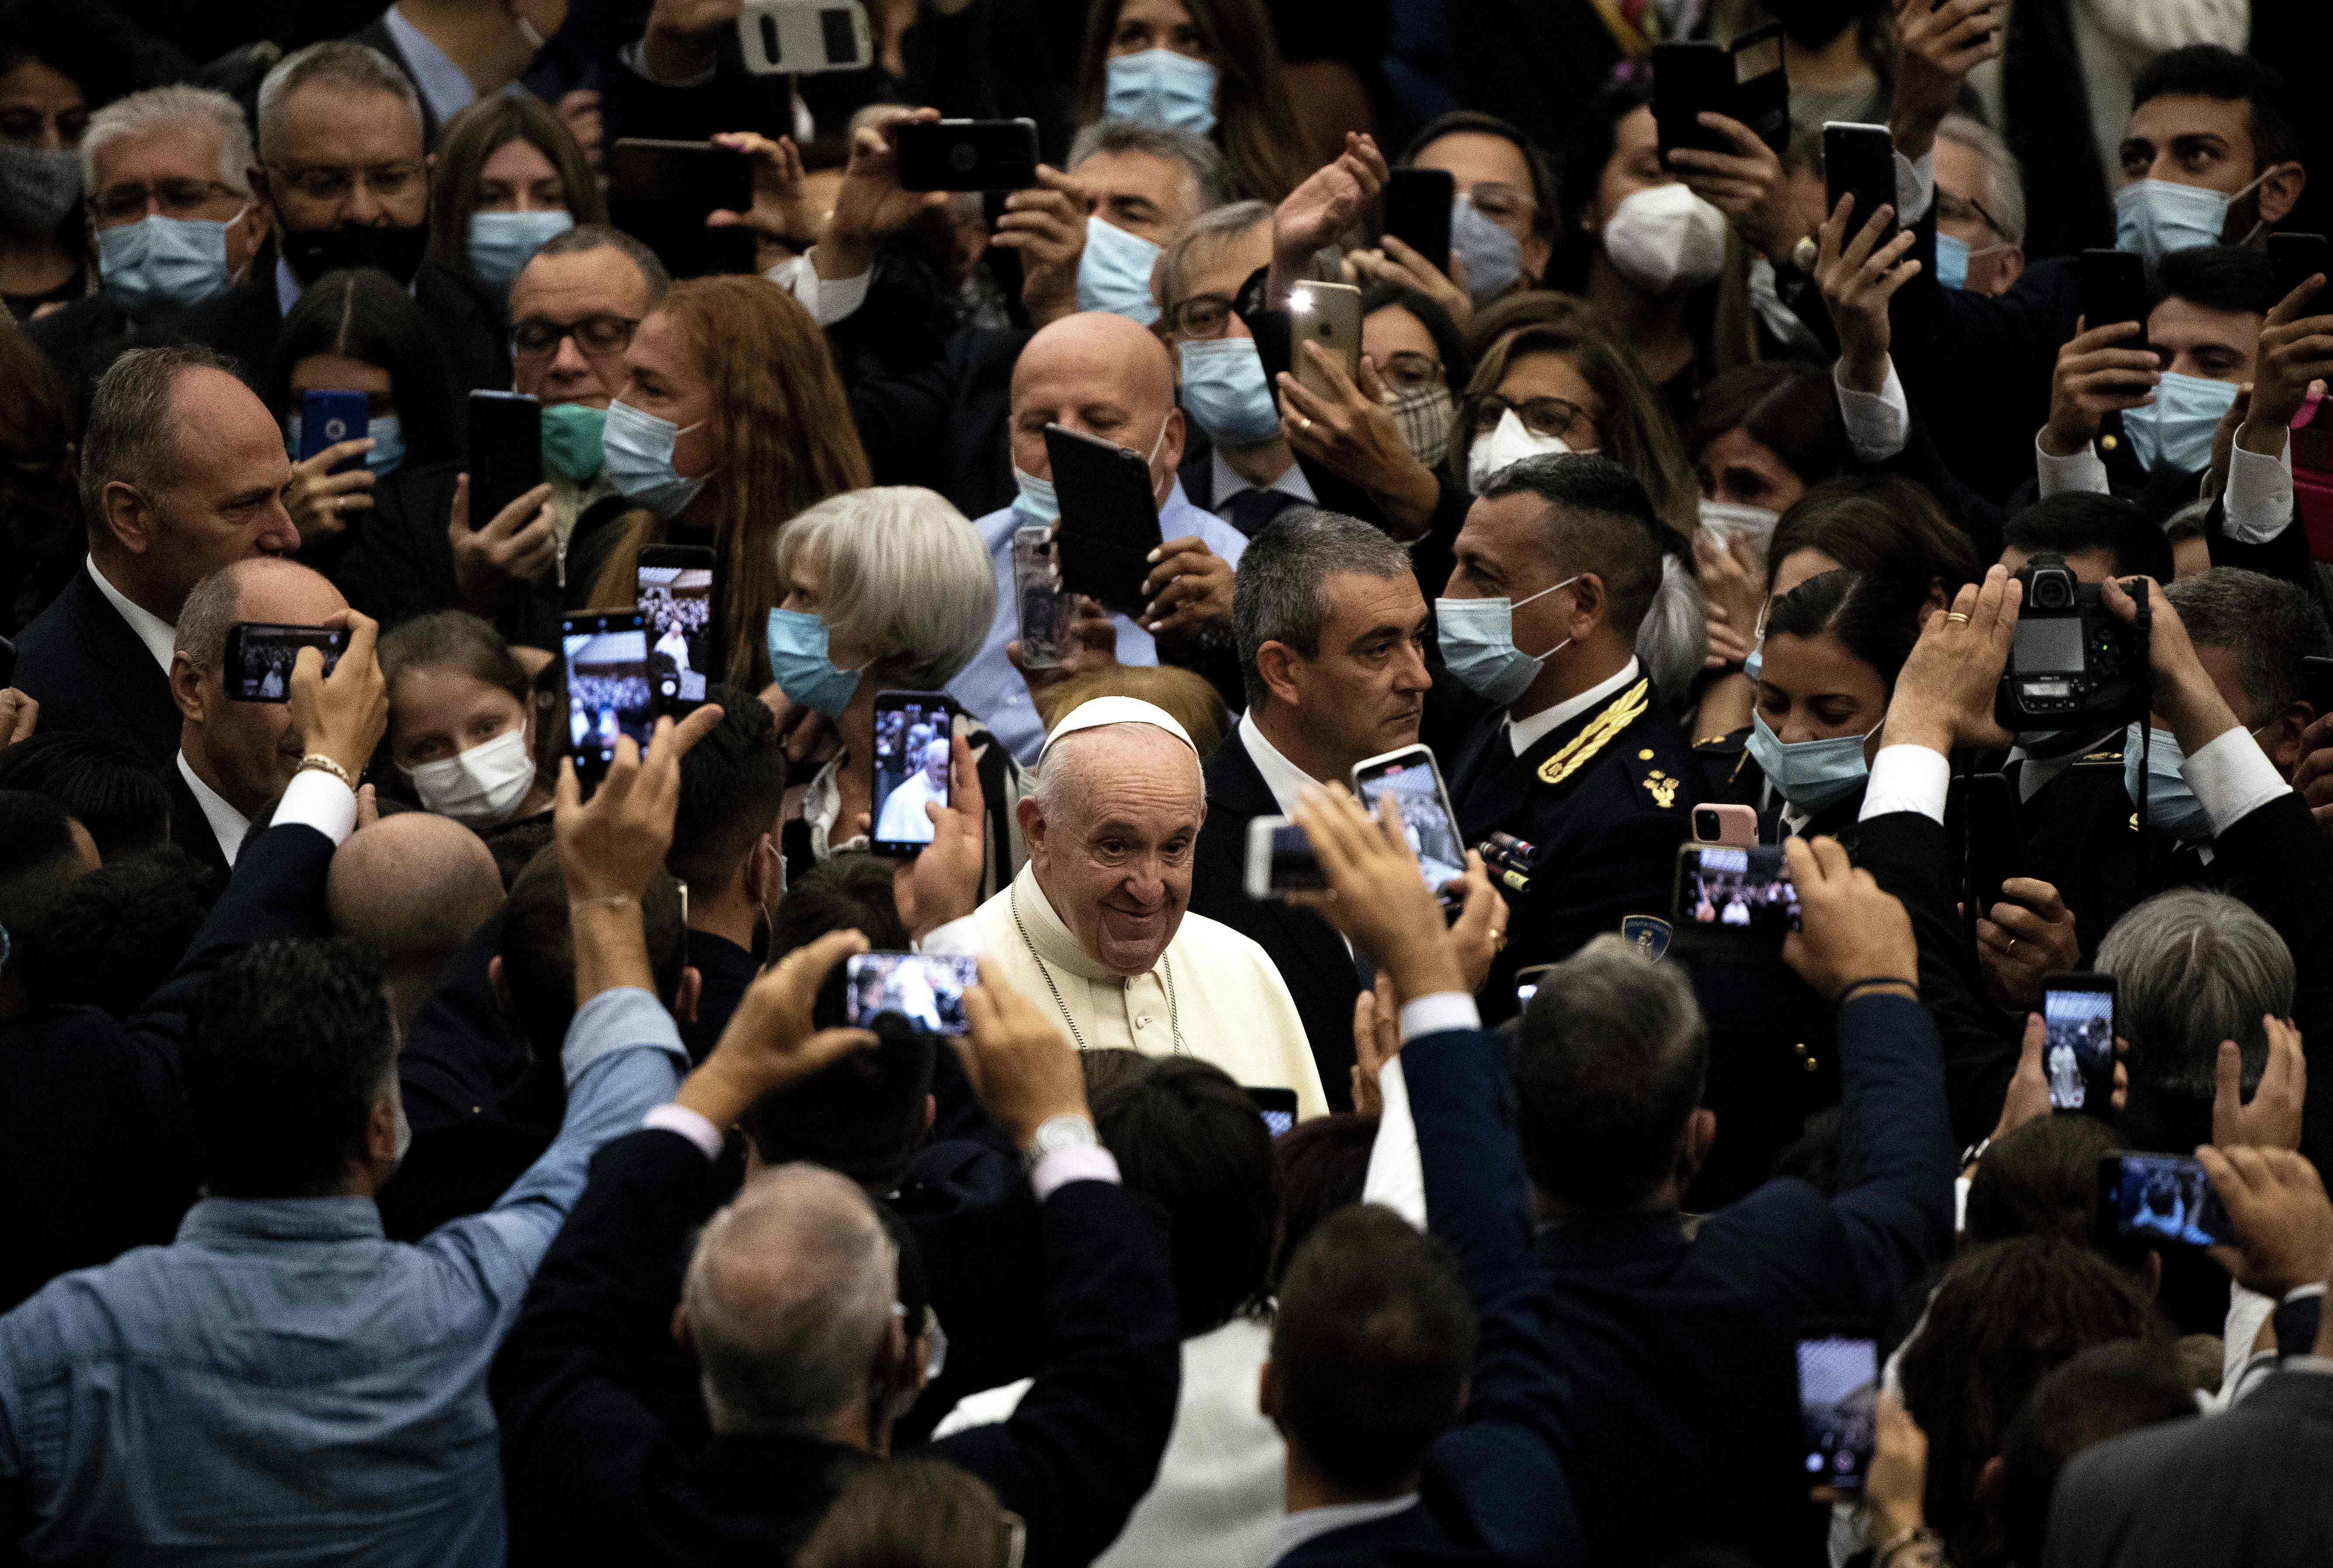 Pope Francis waves as he arrives for the general audience with members of the Italian Police on Sept. 28, 2020 in Paul VI hall at the Vatican.